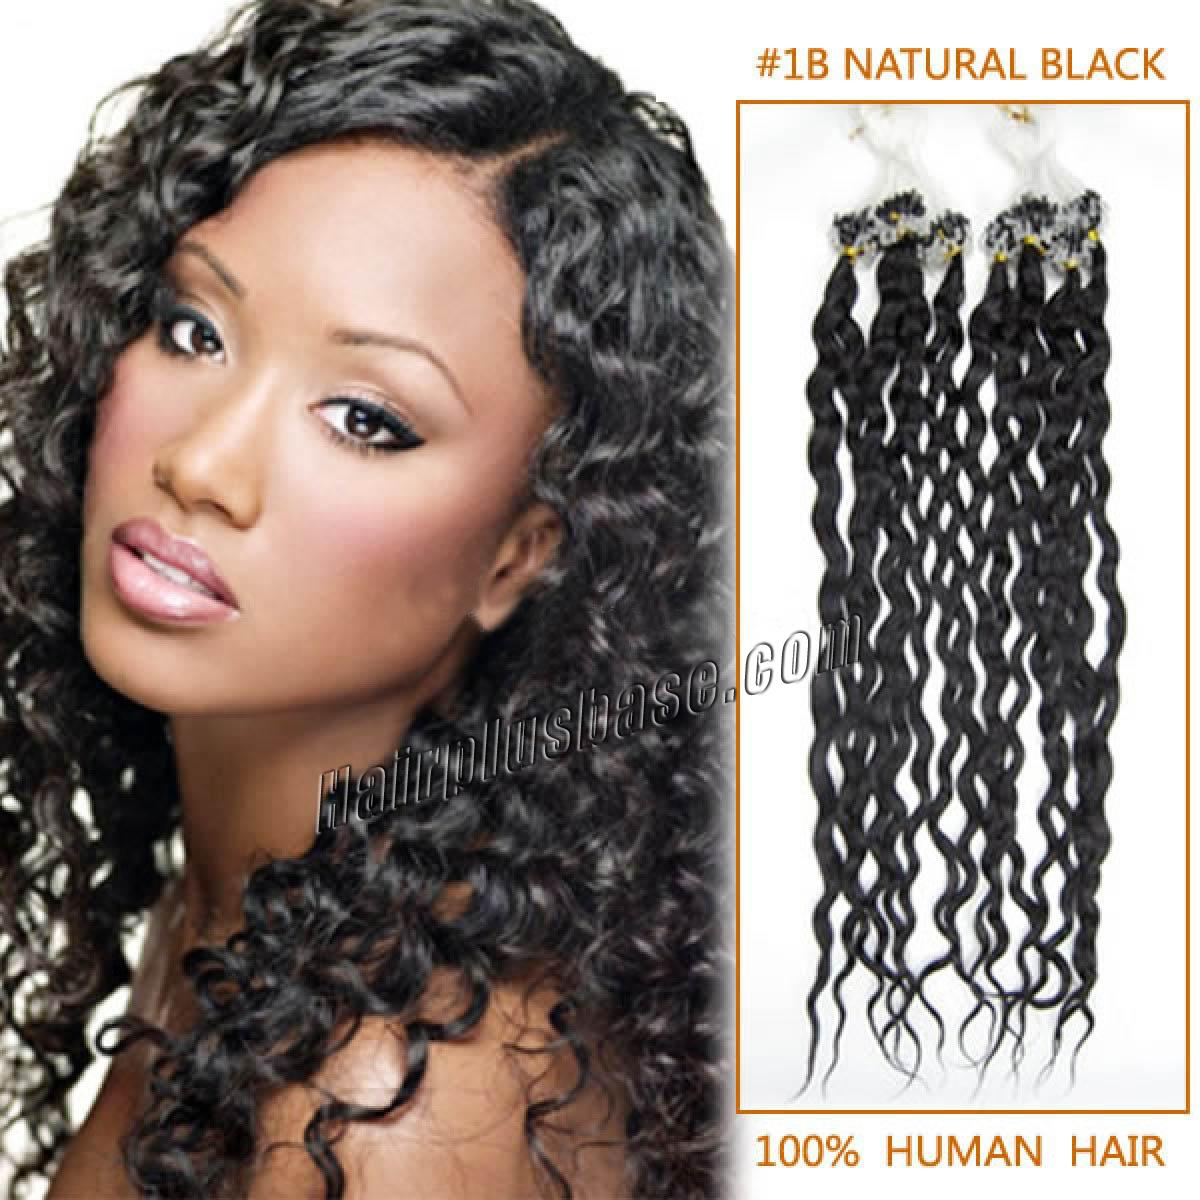 20 Inch 1b Natural Black Curly Micro Loop Human Hair Extensions